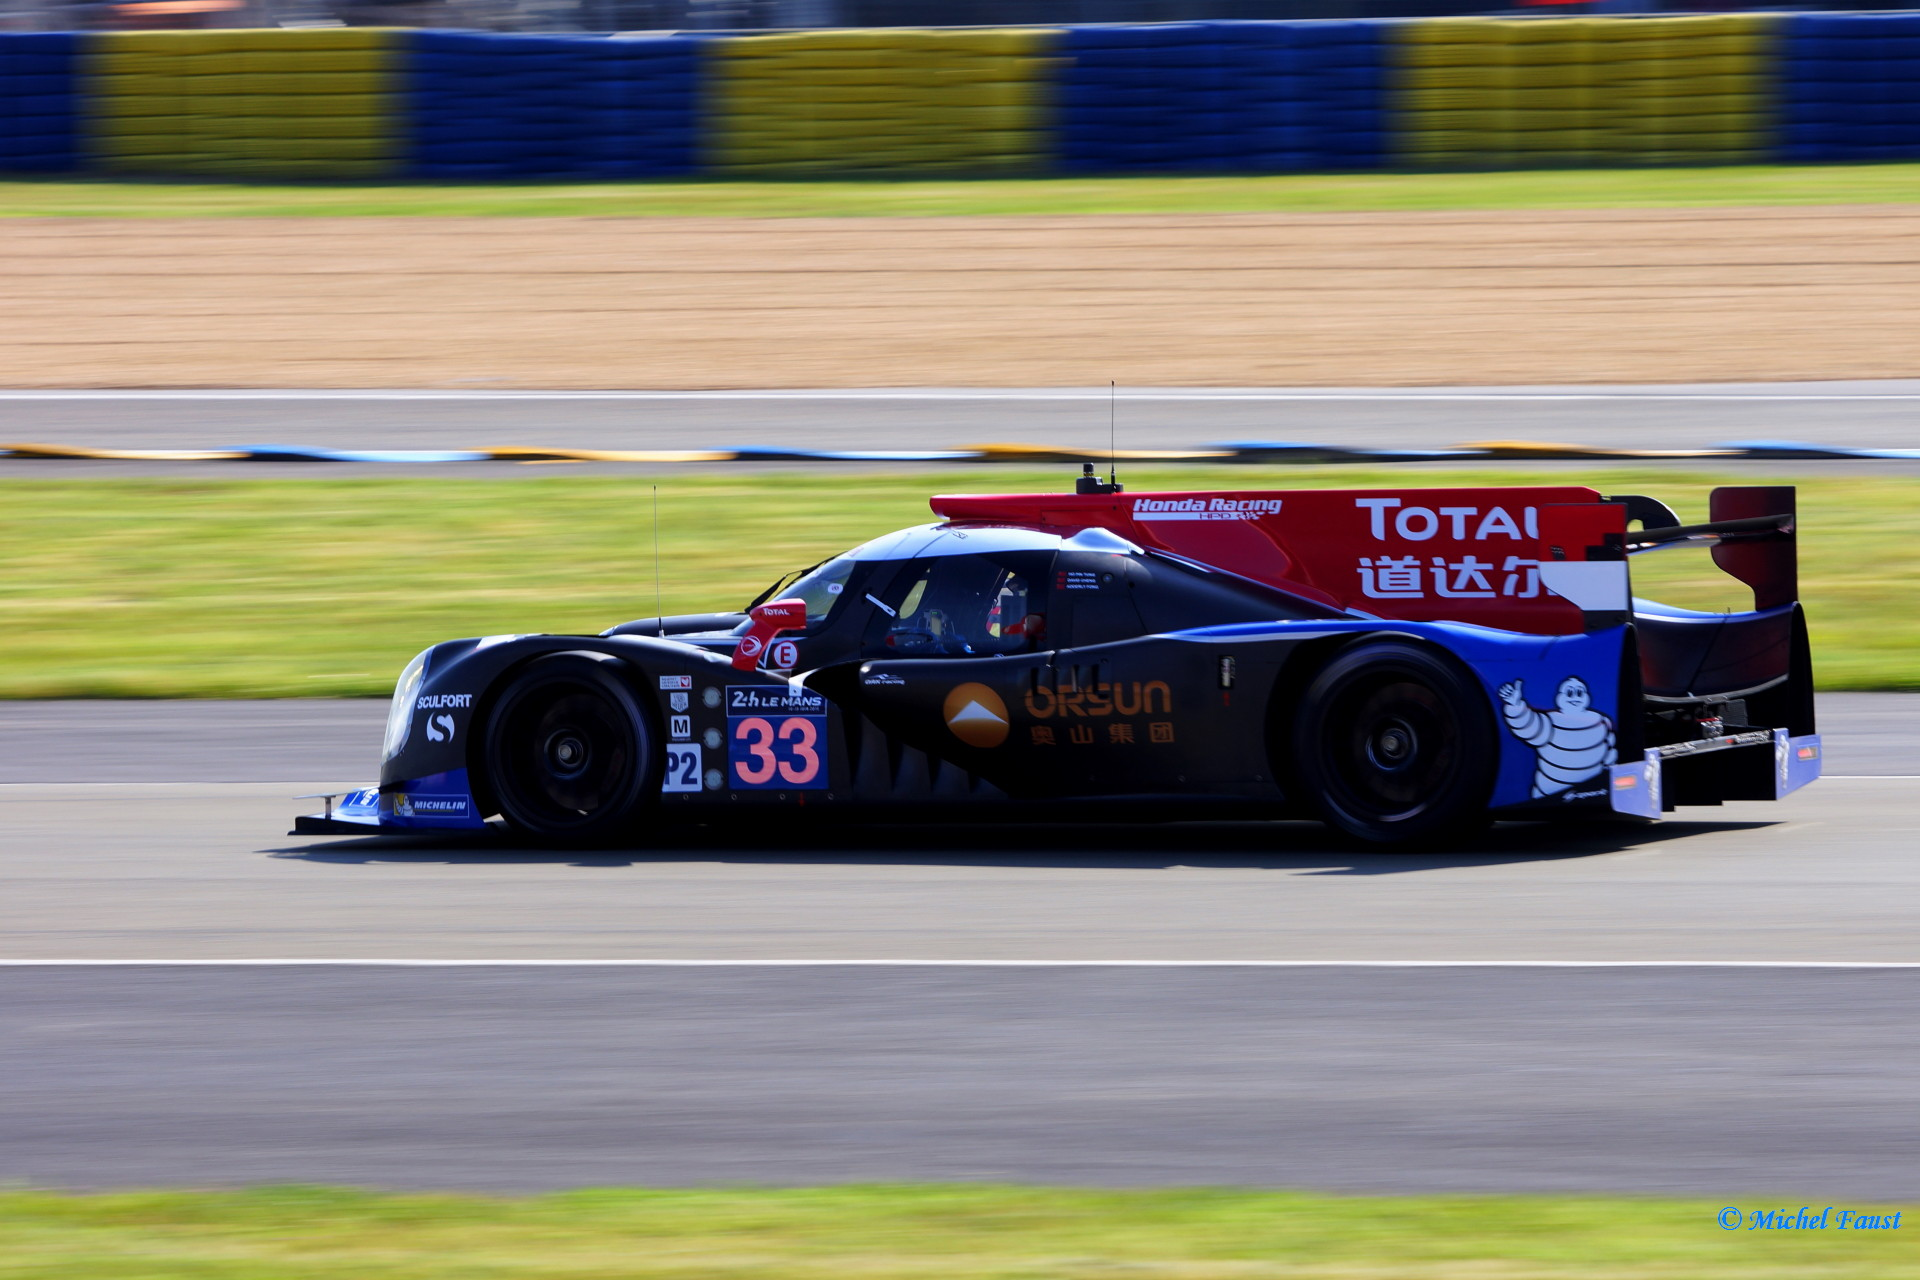 OAK Racing - Team Asia Ligier JS P2 HPD - Cheng / Tung / Fong _ Le Mans 2014 test day